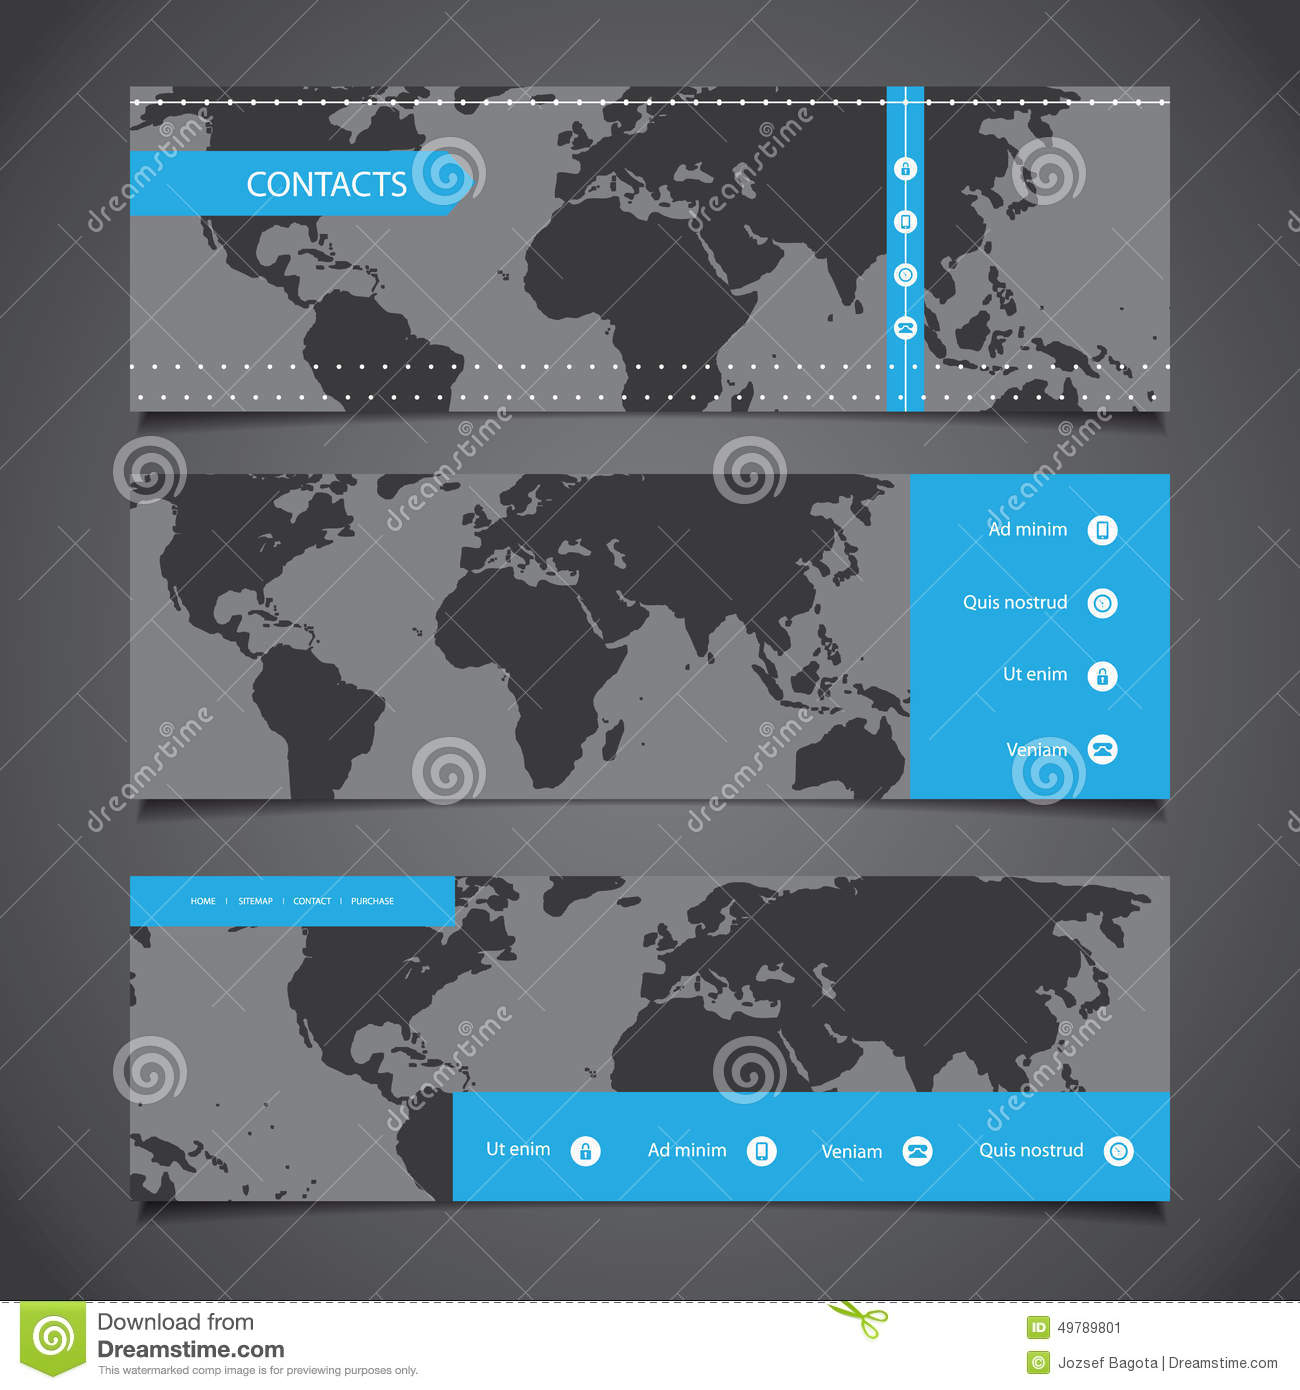 Web design elements header designs with world map stock image download comp gumiabroncs Choice Image